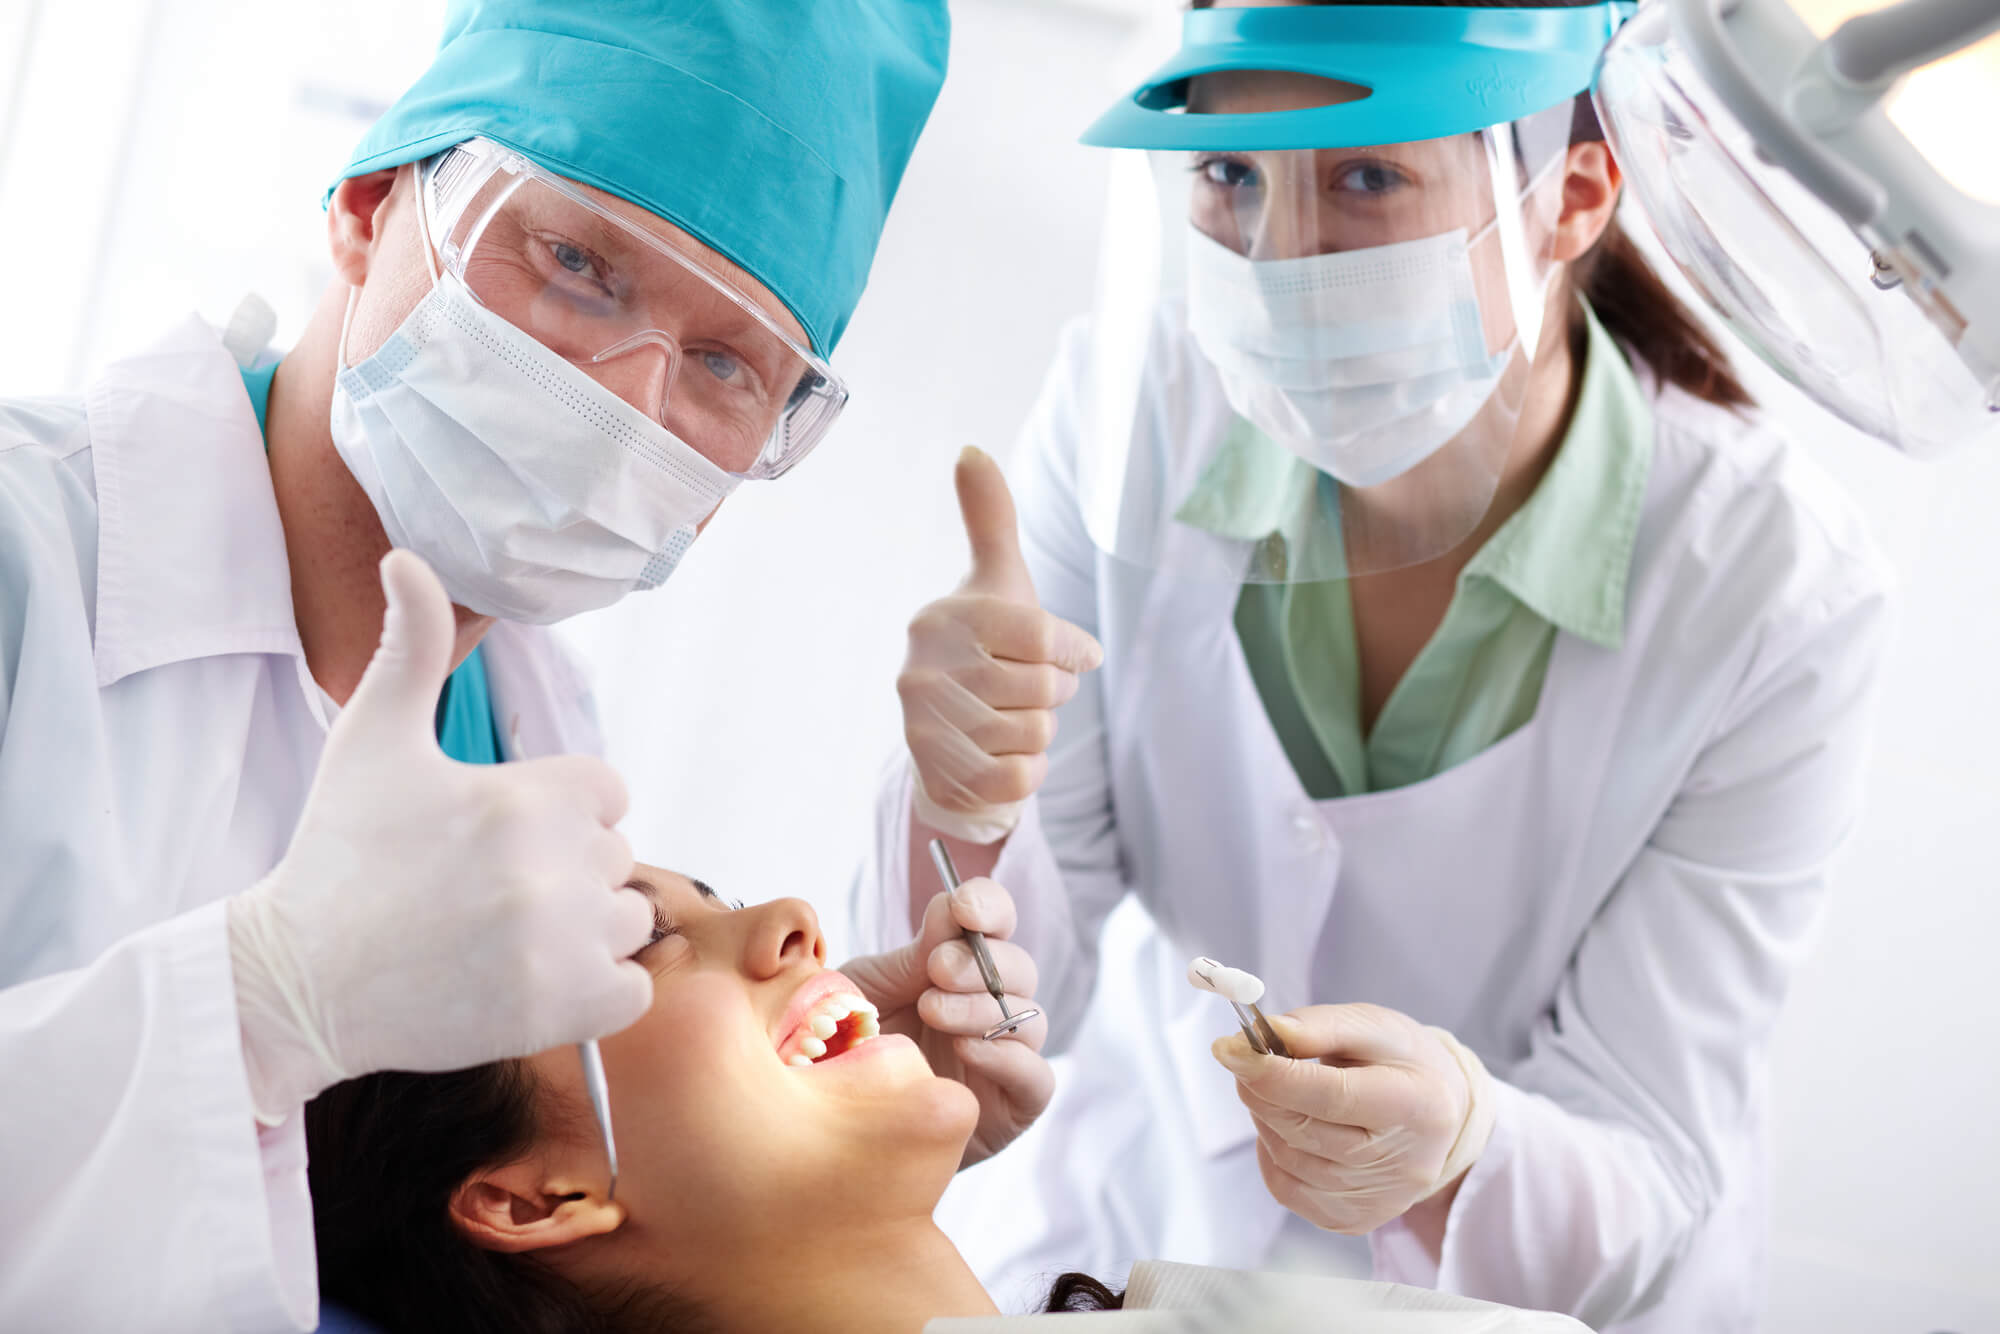 where is the best oral surgery coral springs fl?